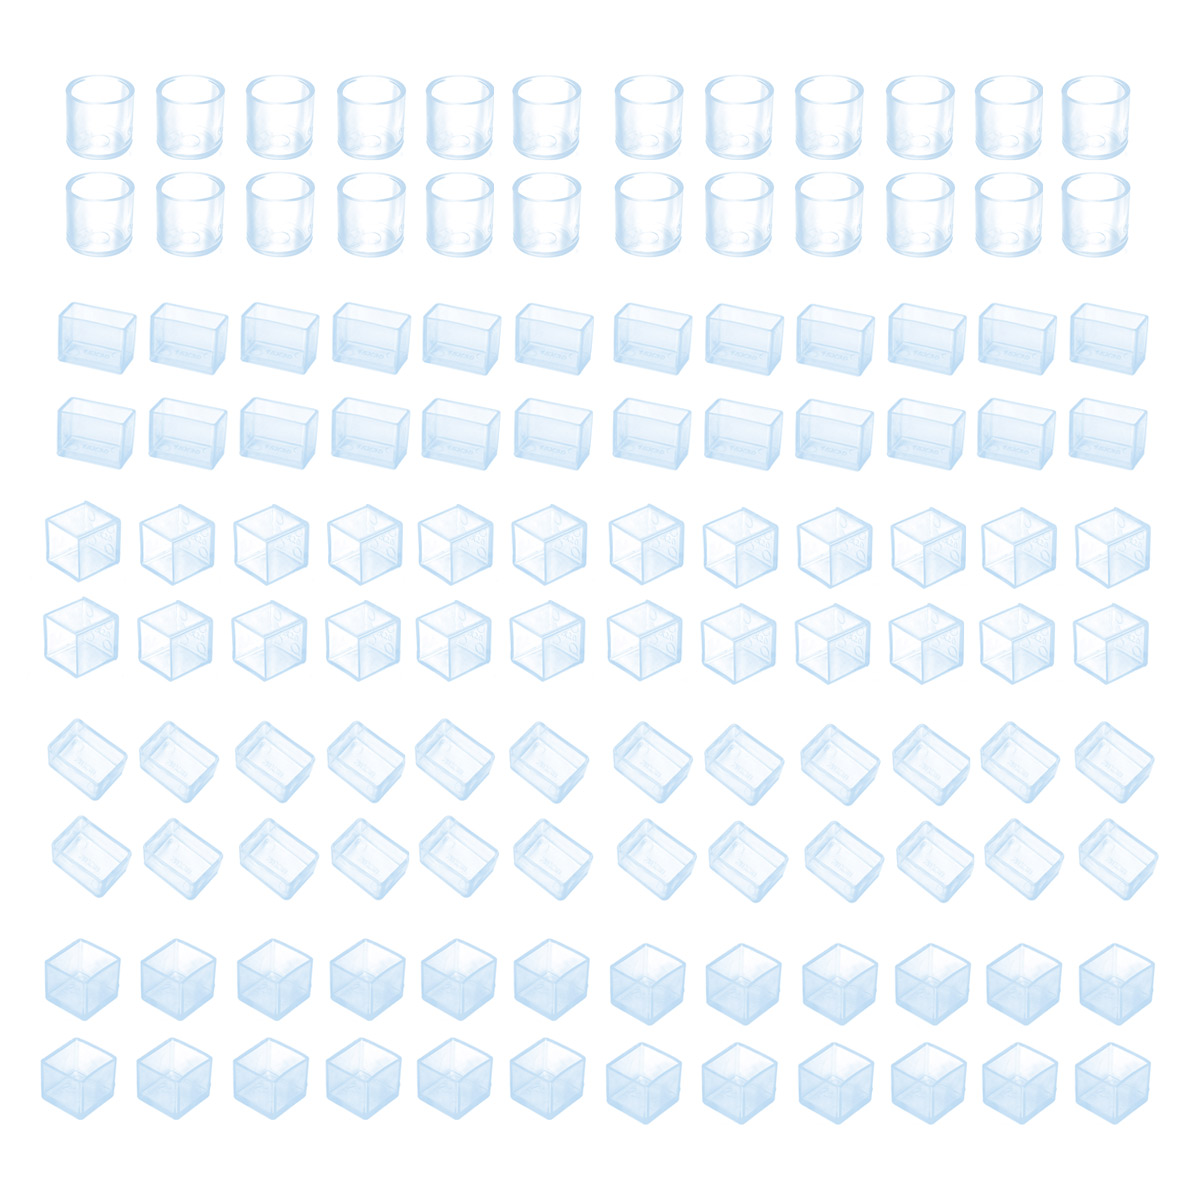 24Pcs Table Chair Leg Mat Rubber Caps Floor Protectors Cover Pads Furniture Foot Chair Leg Tips End Caps Covers Floor Protectors